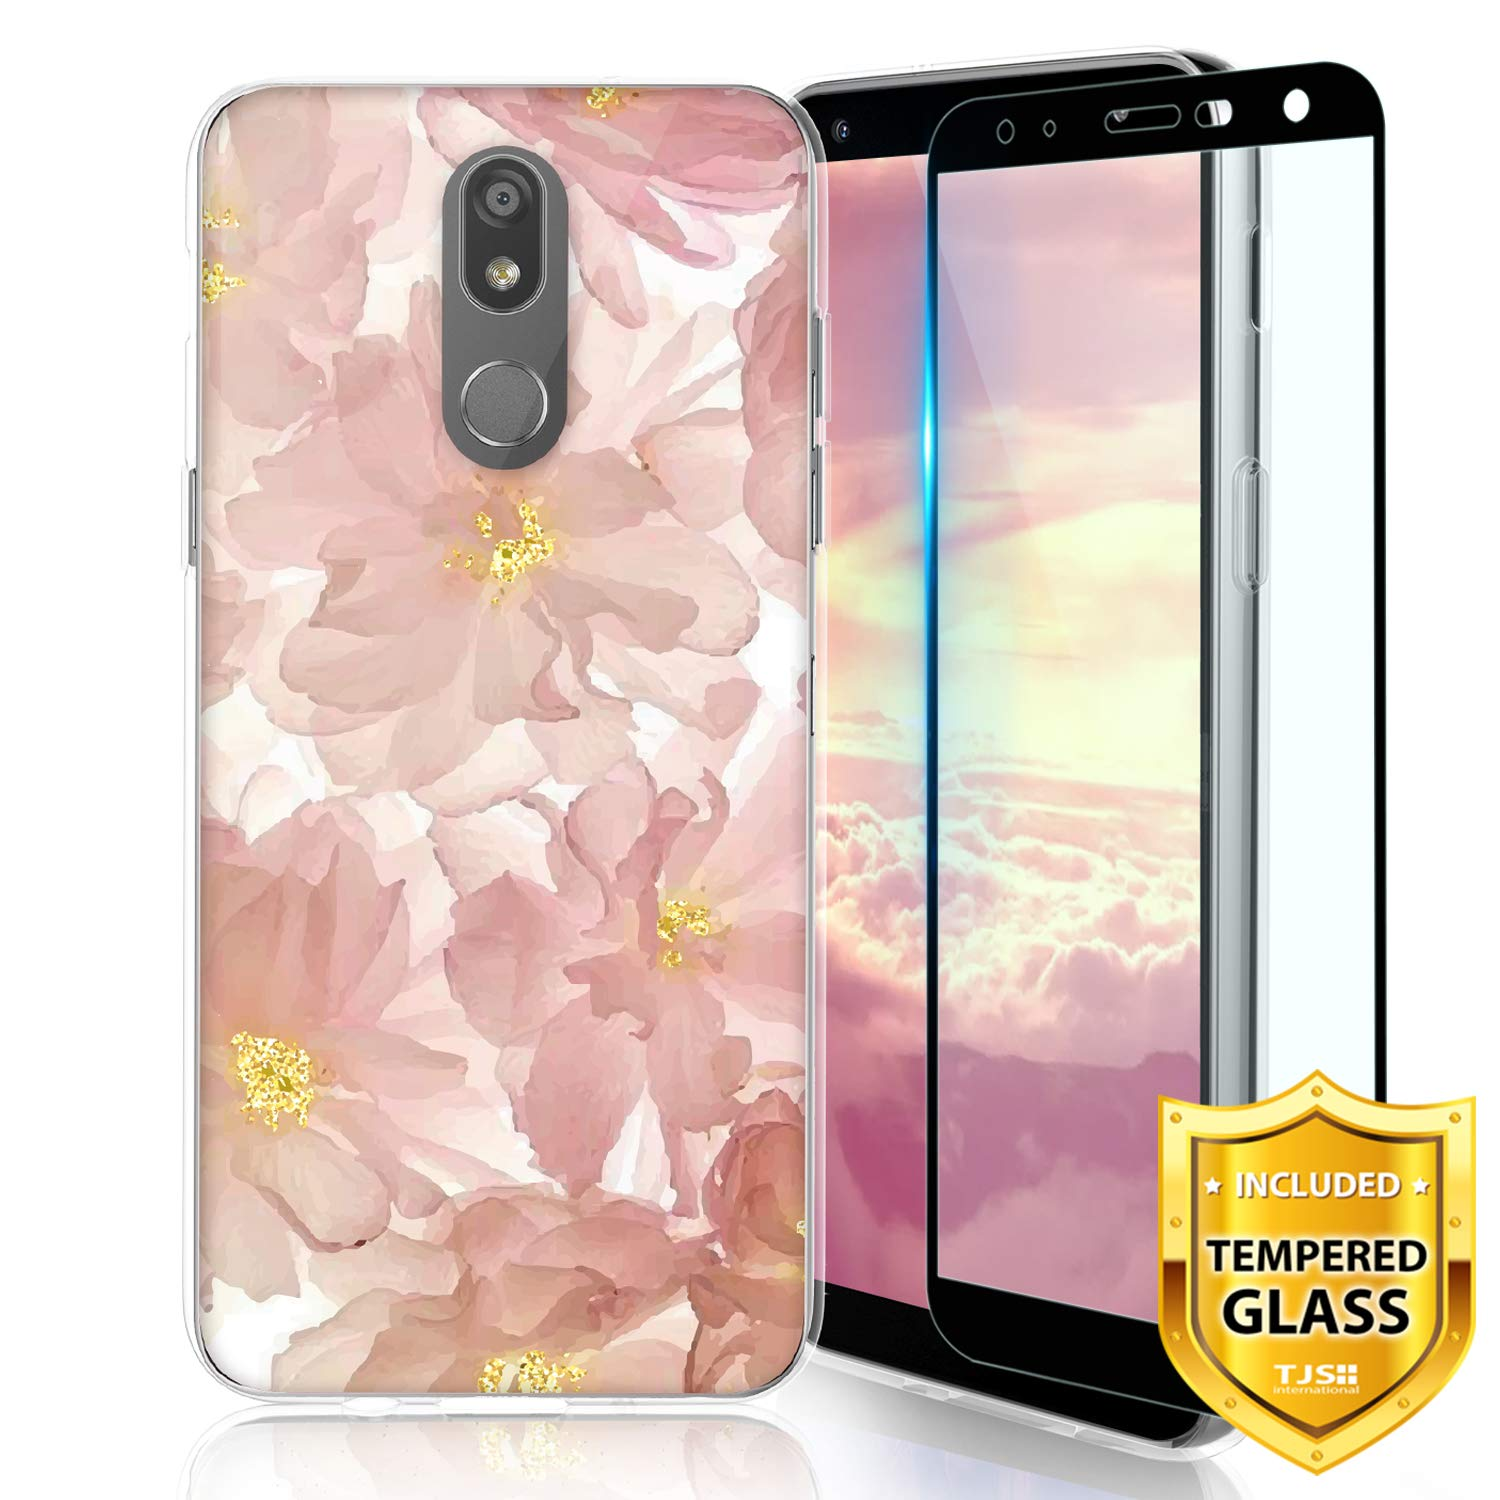 TJS Phone Case for LG K40/K12 Plus/X4/Solo LTE/Harmony 3/Xpression Plus 2, with [Full Coverage Tempered Glass Screen Protector] TPU Matte Color Transparent Clear Soft Skin Design Cover (Blush)